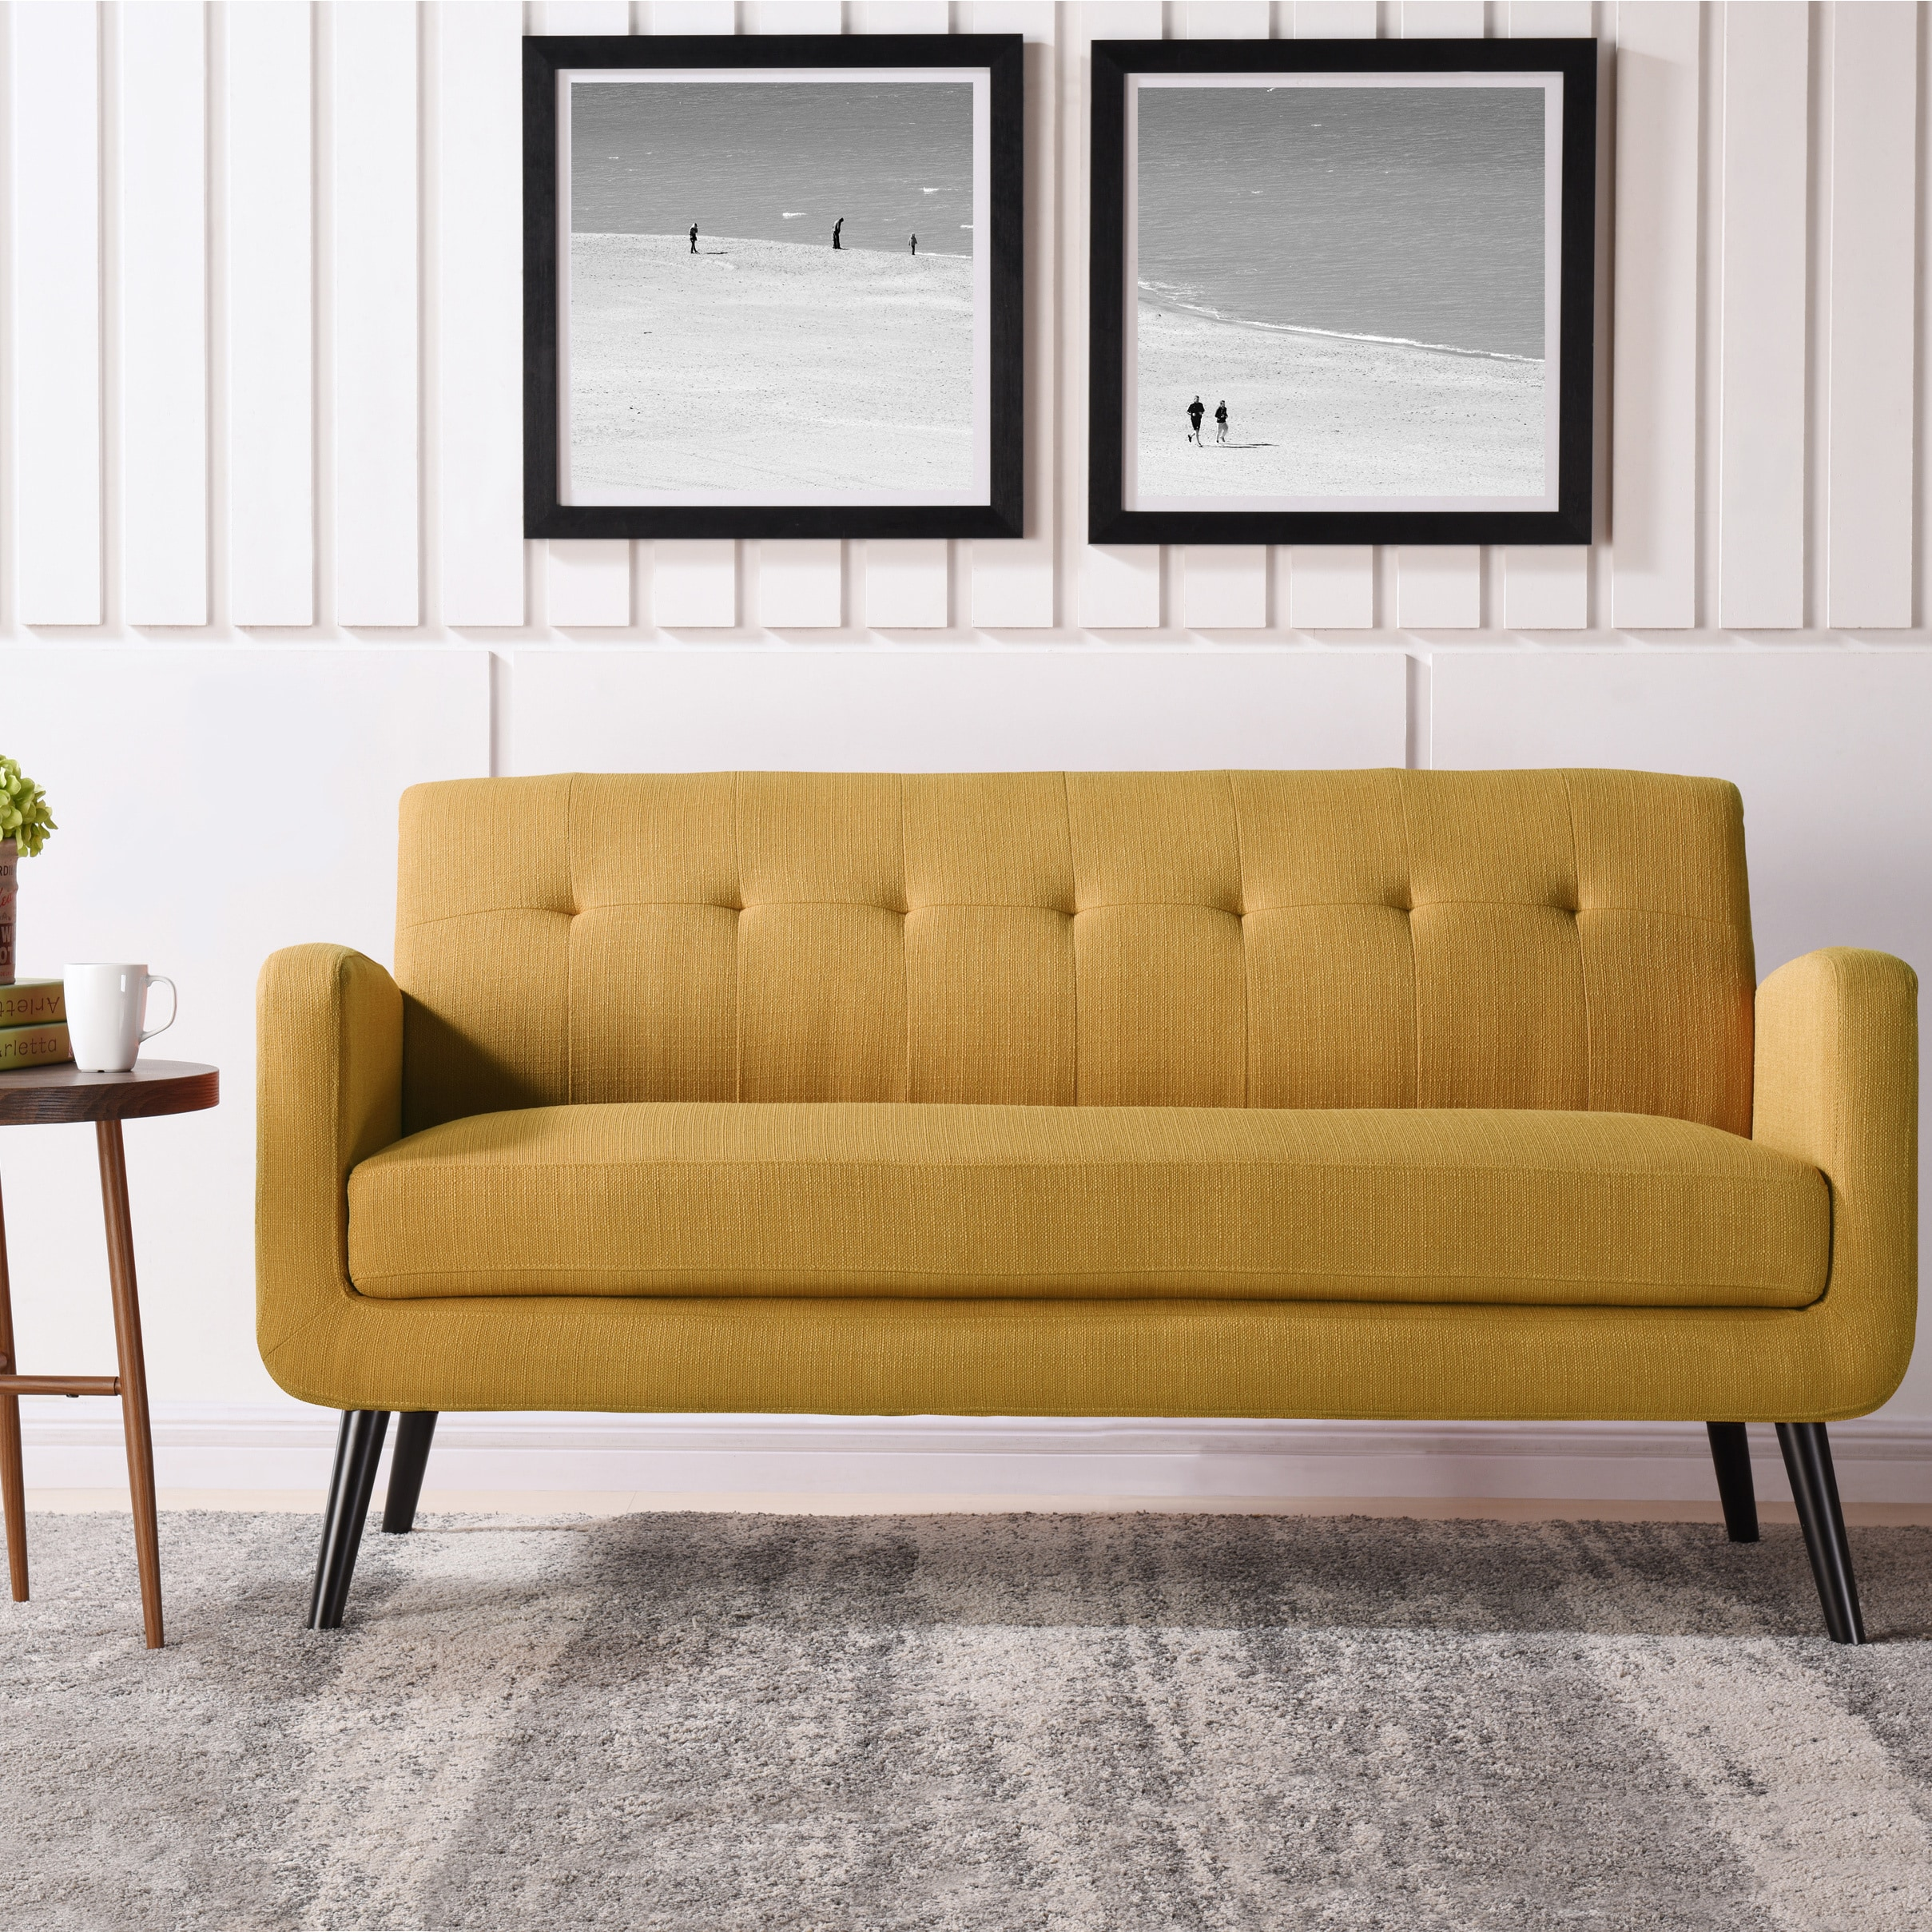 Overstock.com & Buy Sofas \u0026 Couches Online at Overstock | Our Best Living Room ...